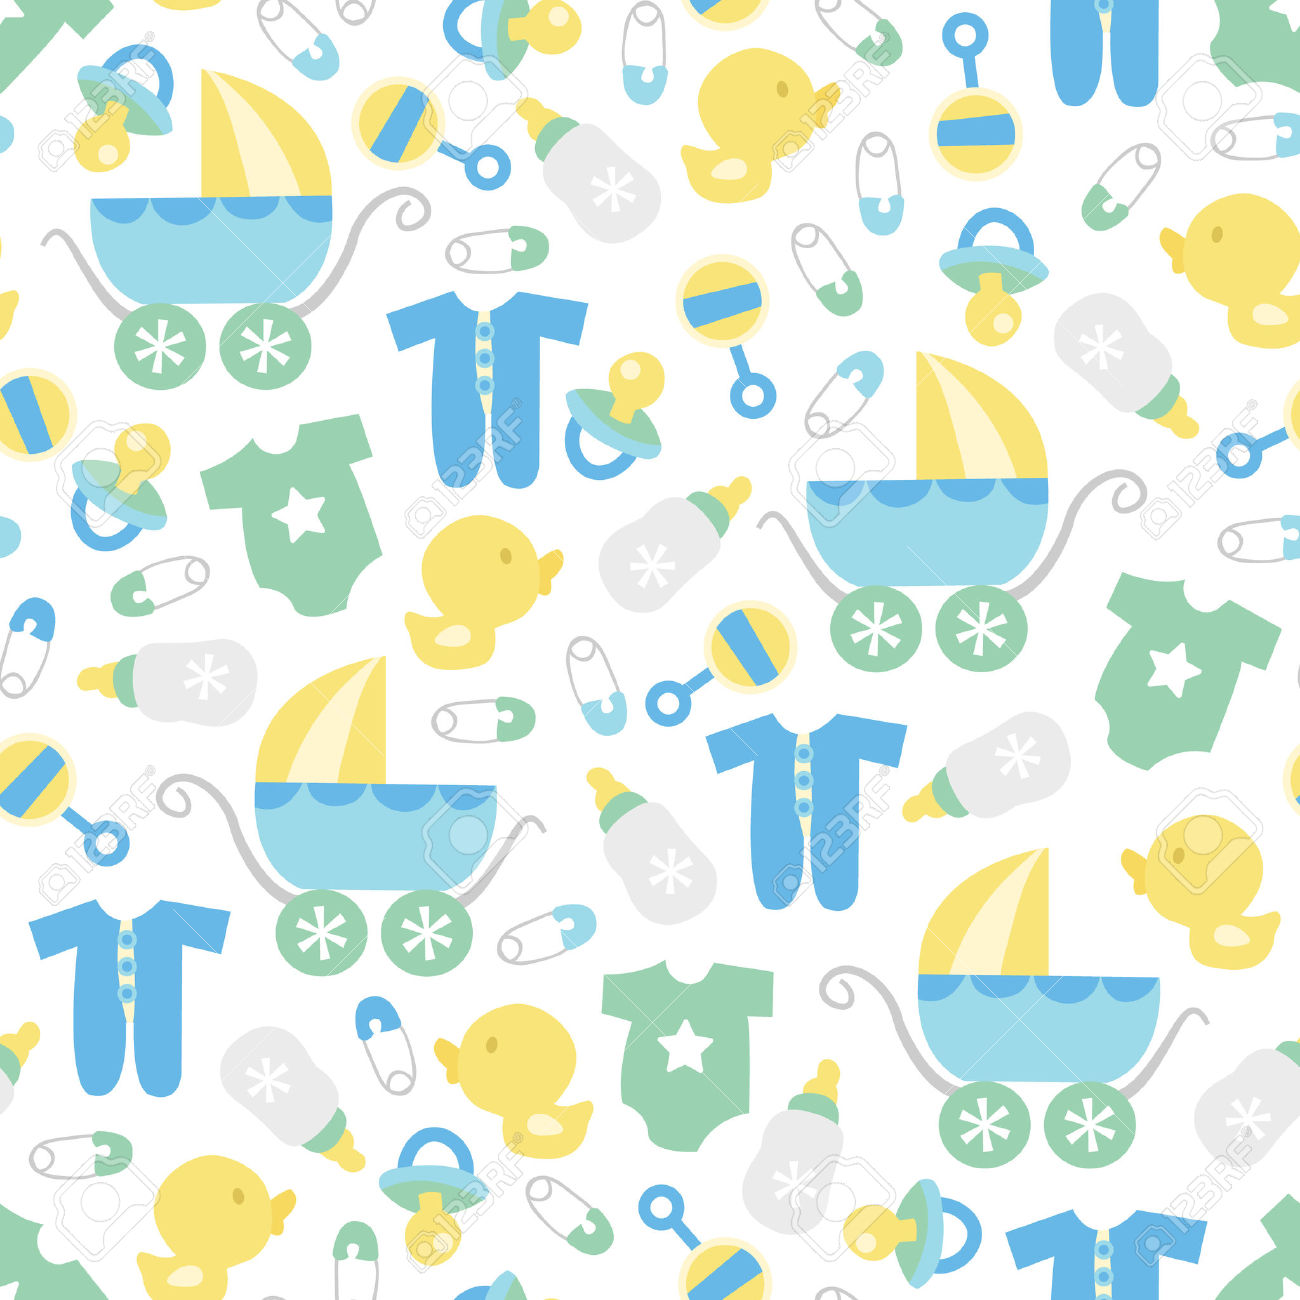 Cute baby clipart patterns graphic free A Vector Illustration Of A Cute Retro Baby Boy Theme Seamless ... graphic free